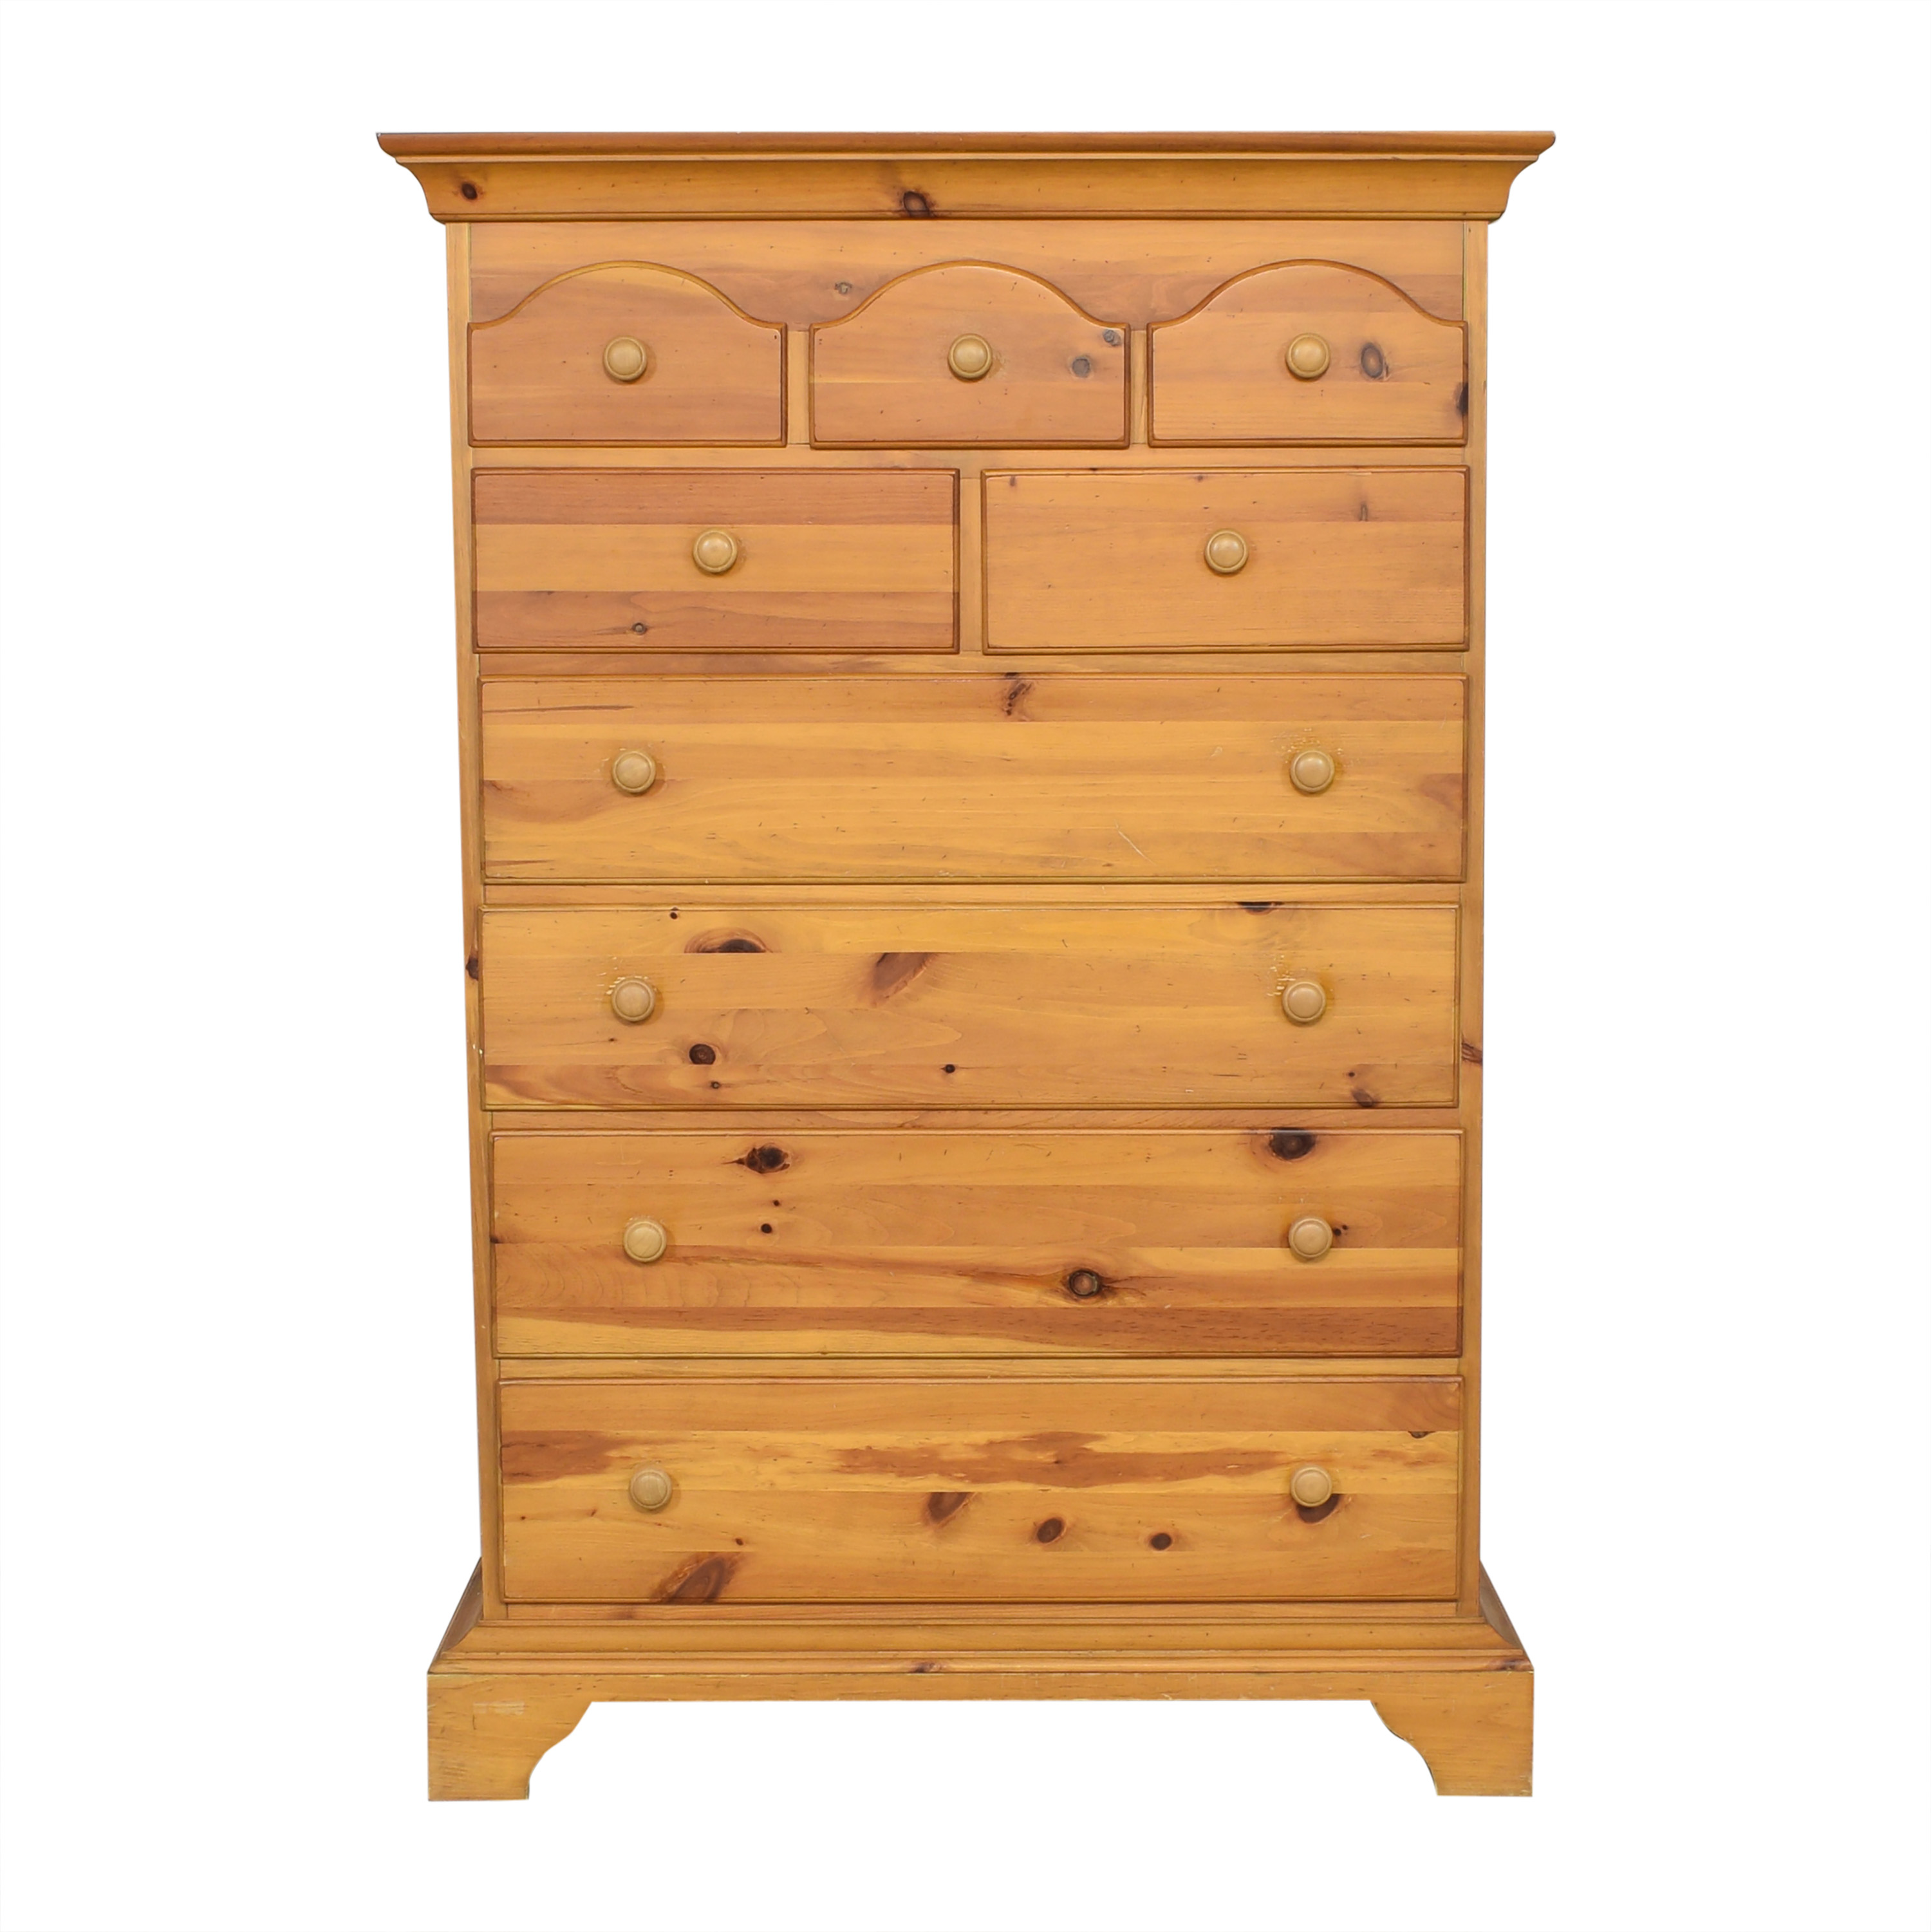 Thomasville Thomasville Country Inns and Back Roads Collection Dresser on sale